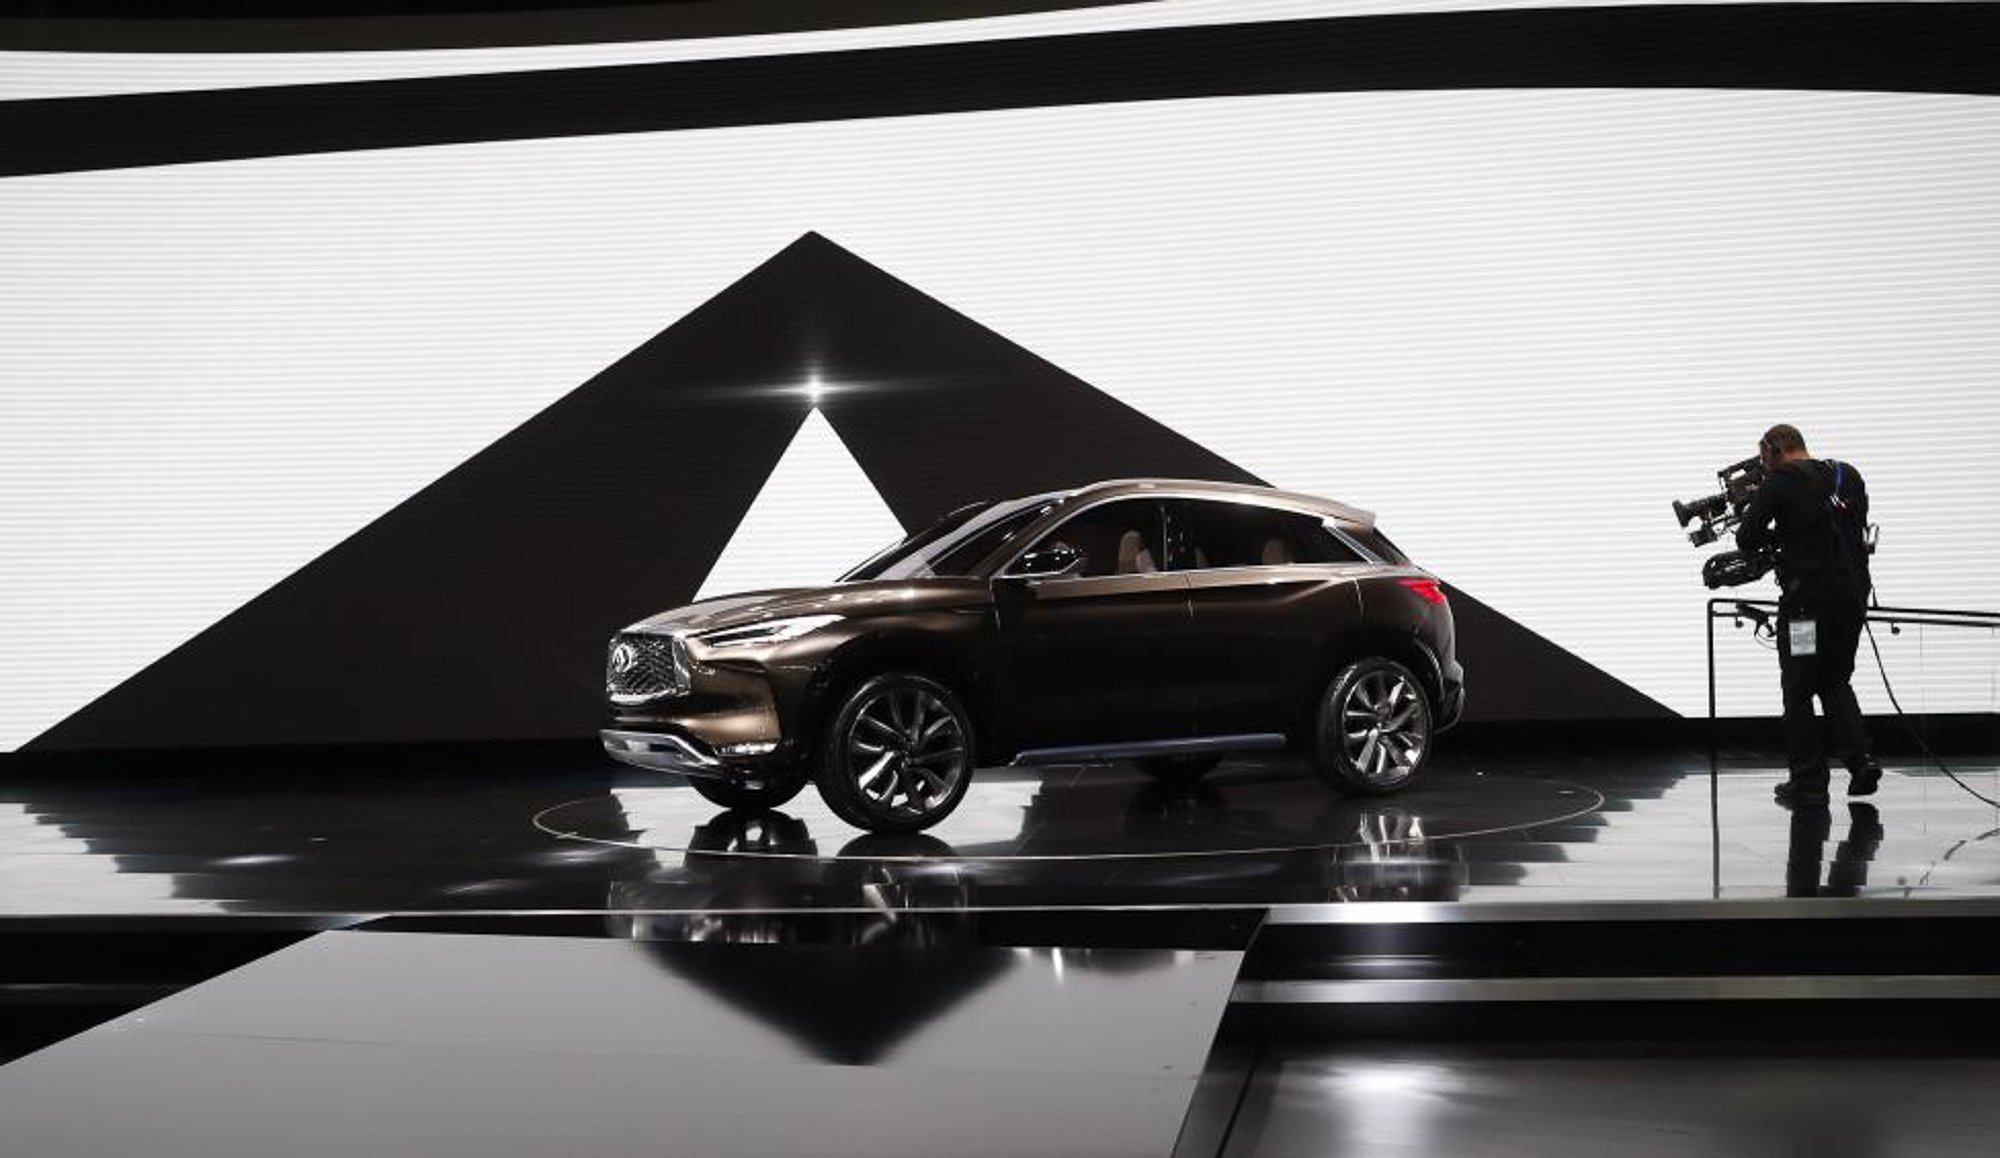 The Infiniti QX50 concept car. PHOTO: REUTERS